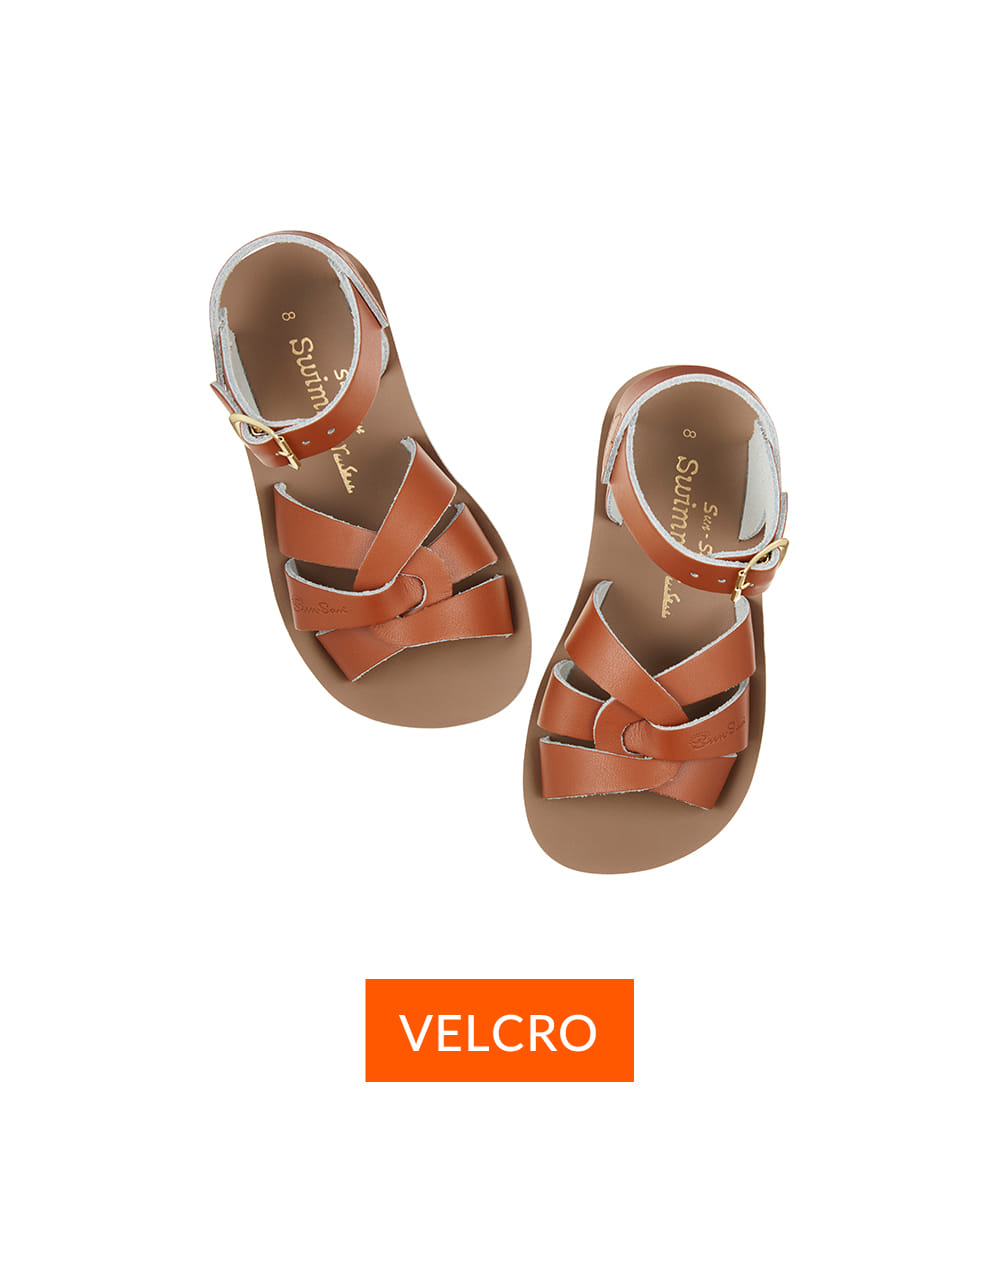 SALT-WATER SANDAL  CHILD VELCRO SWIMMER  Tan